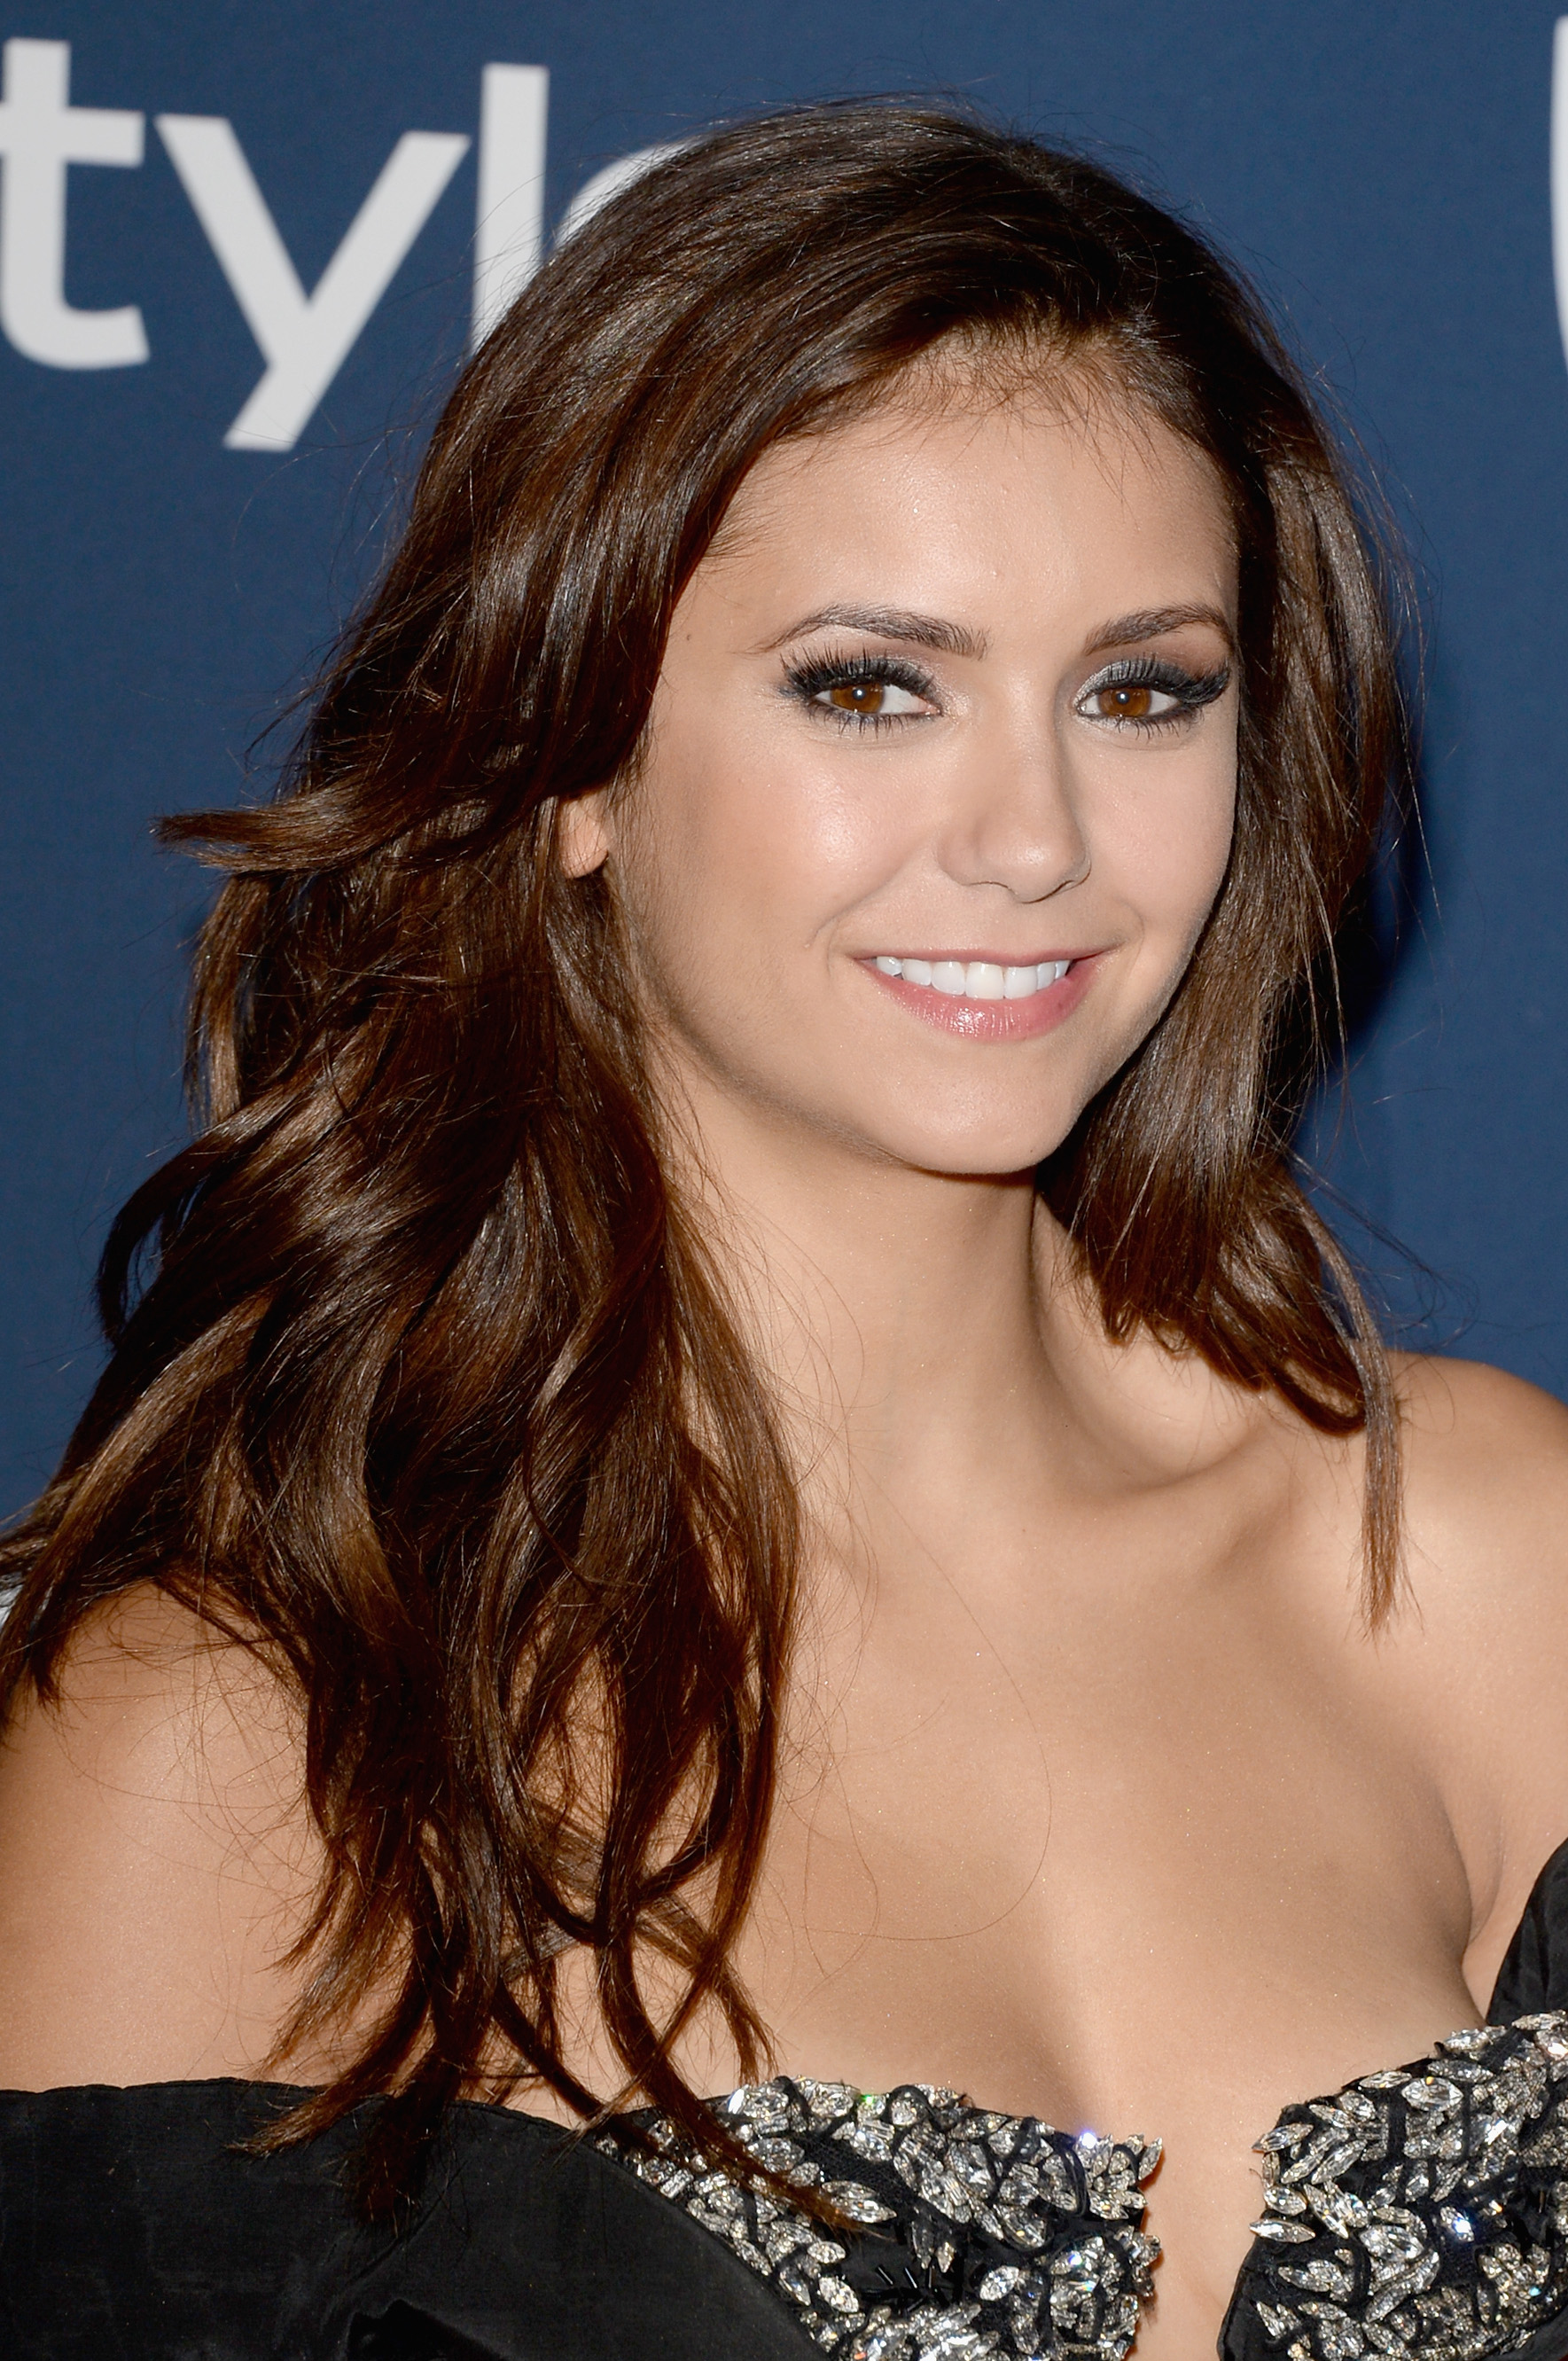 Photos Nina Dobrev nudes (95 foto and video), Ass, Bikini, Instagram, cleavage 2018